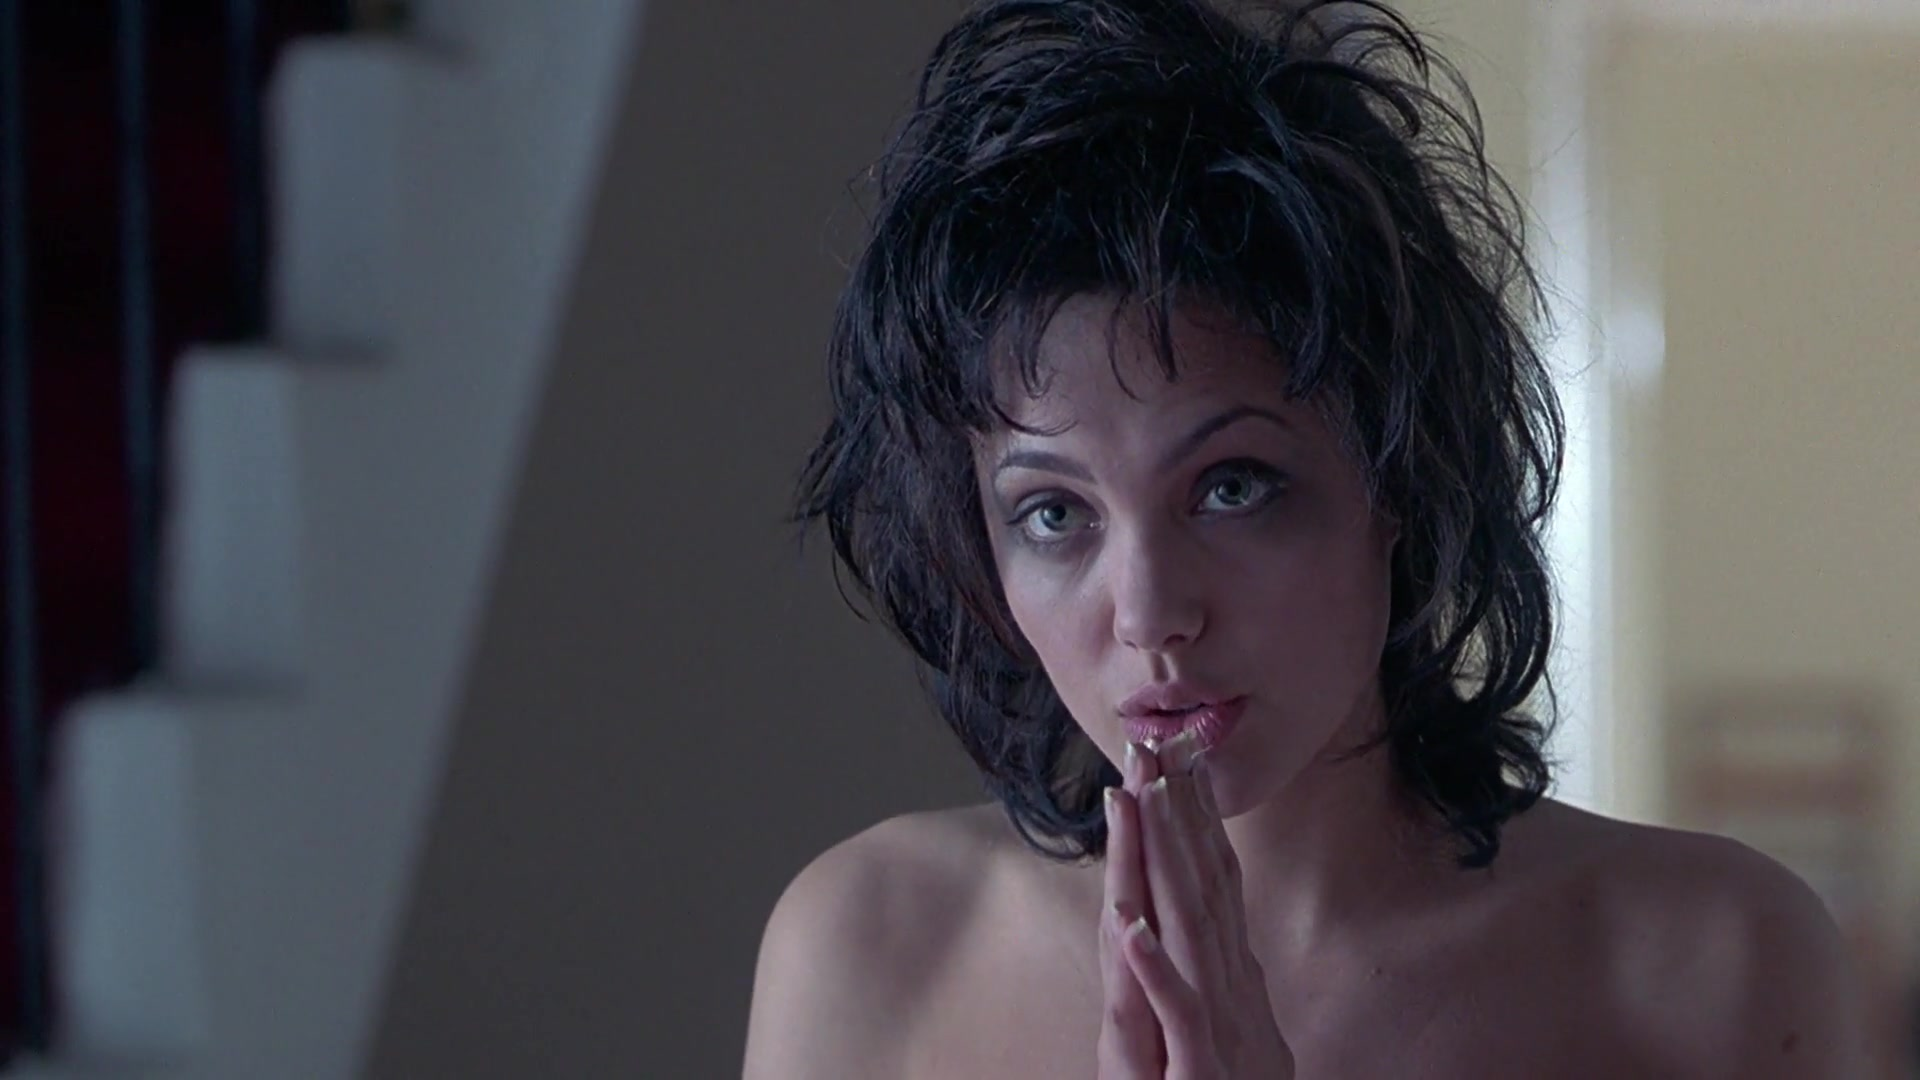 Angelina Jolie wakes up and walks around naked in hallway for Gia